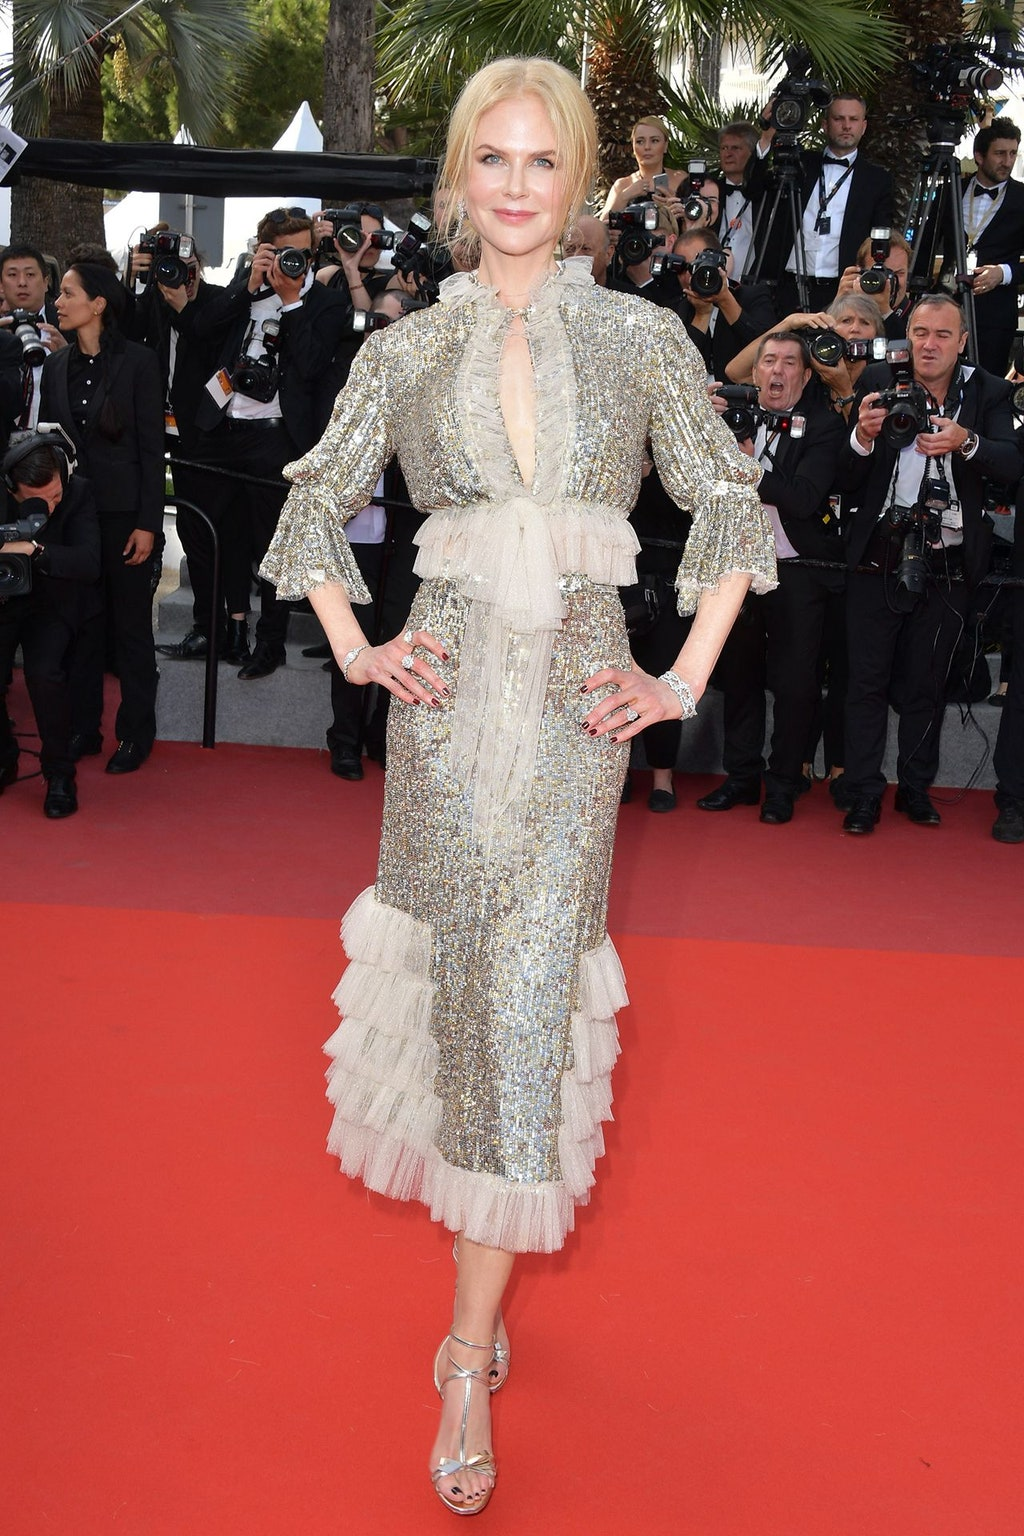 Red Carpet bling Nicole Kidman In Her Silver Sequin and Ruffle Trim Keyhole Short Dress